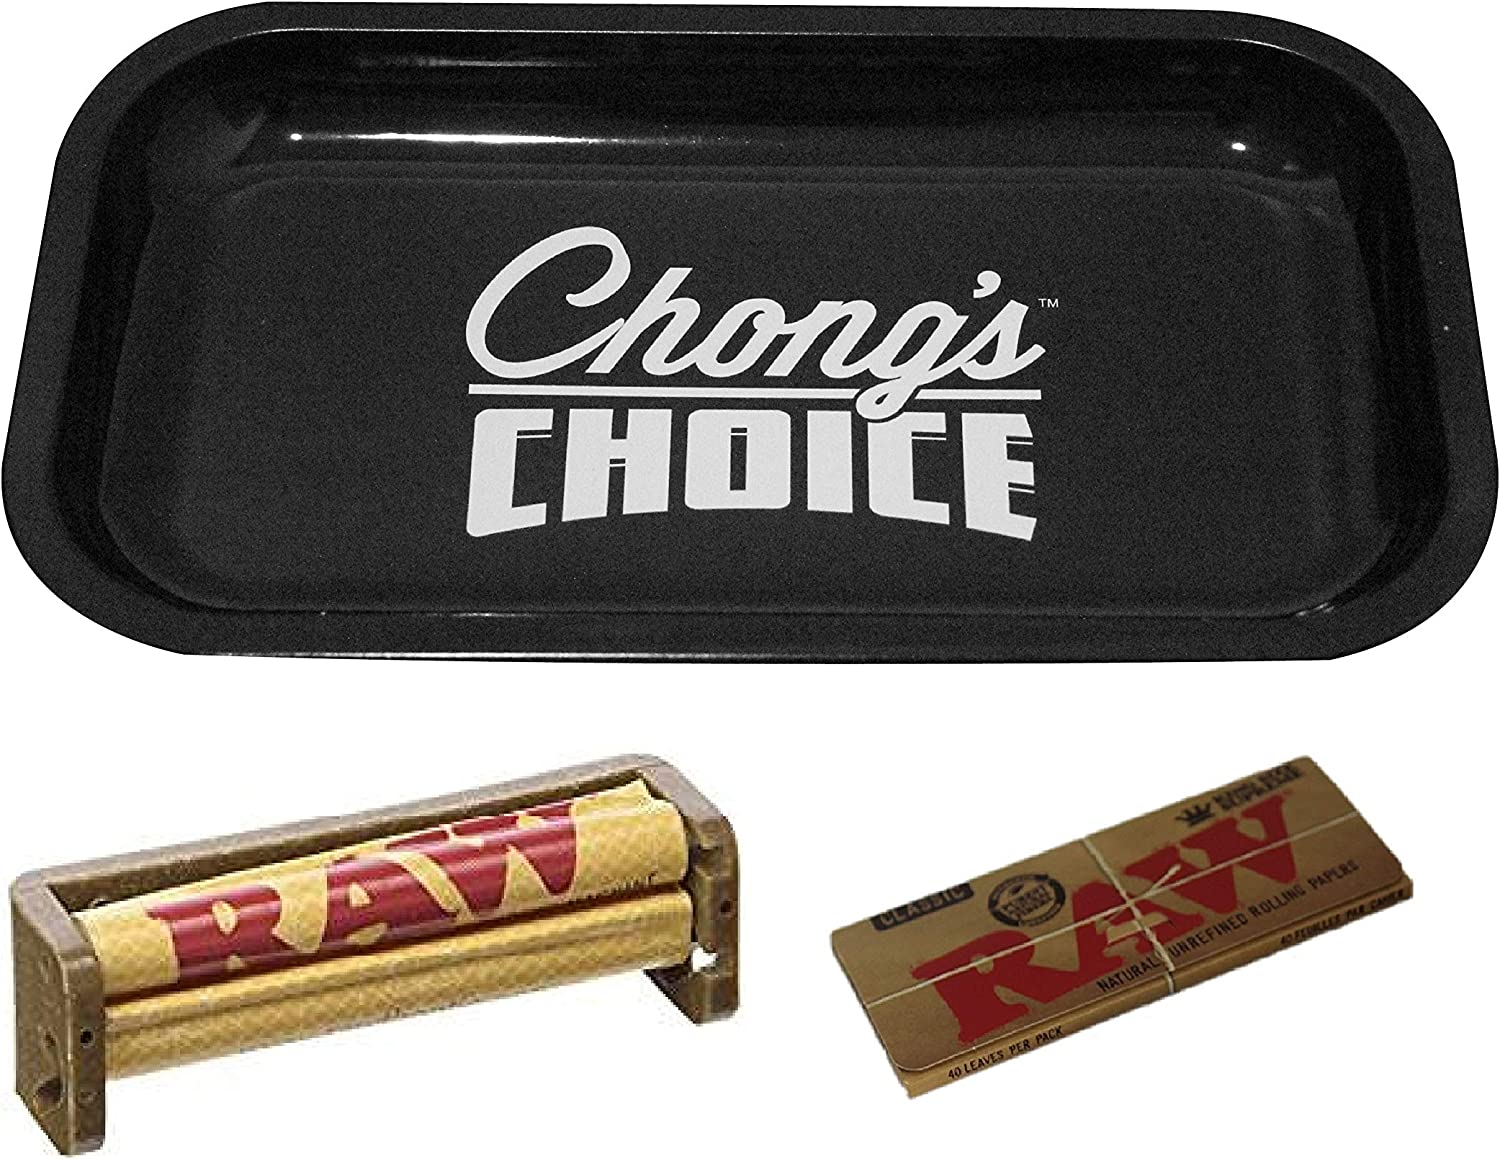 Chongs 5 ☆ popular Choice Rolling 1 year warranty Tray Small Bundle Raw 110mm with Roller an